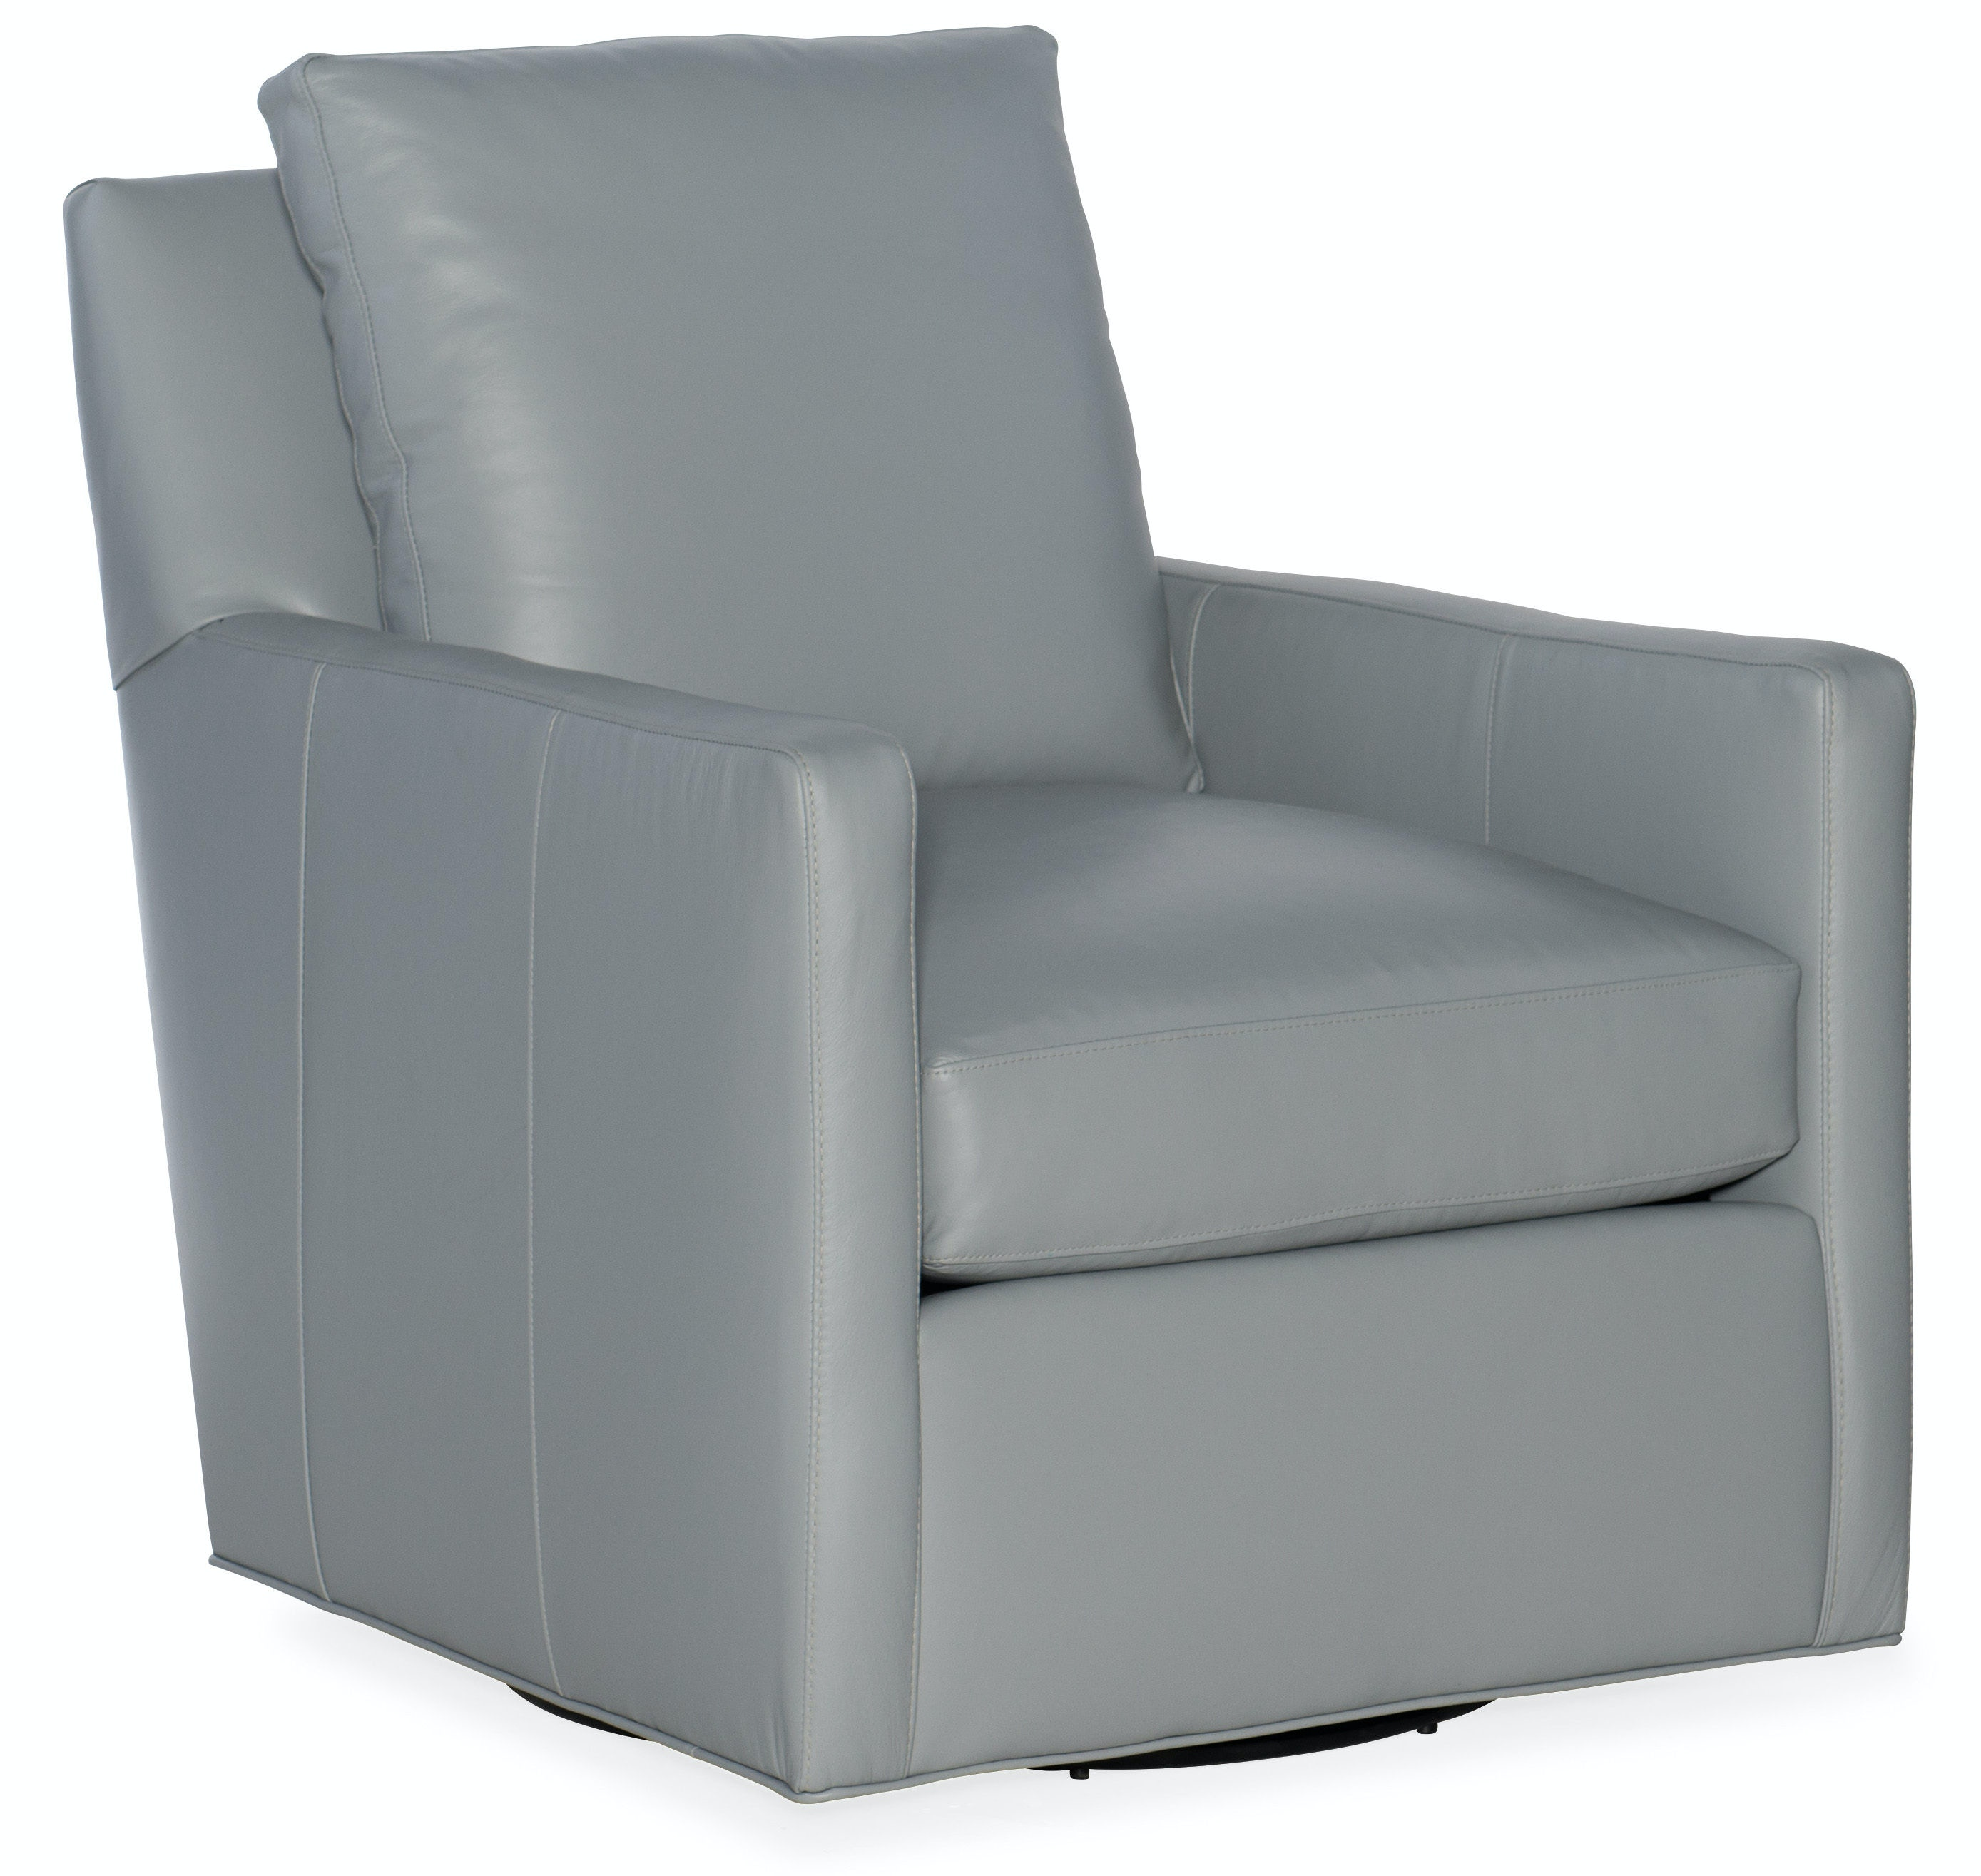 Superieur Bradington Young Jaxon Swivel Tub Chair 8 Way Tie 321 25SW